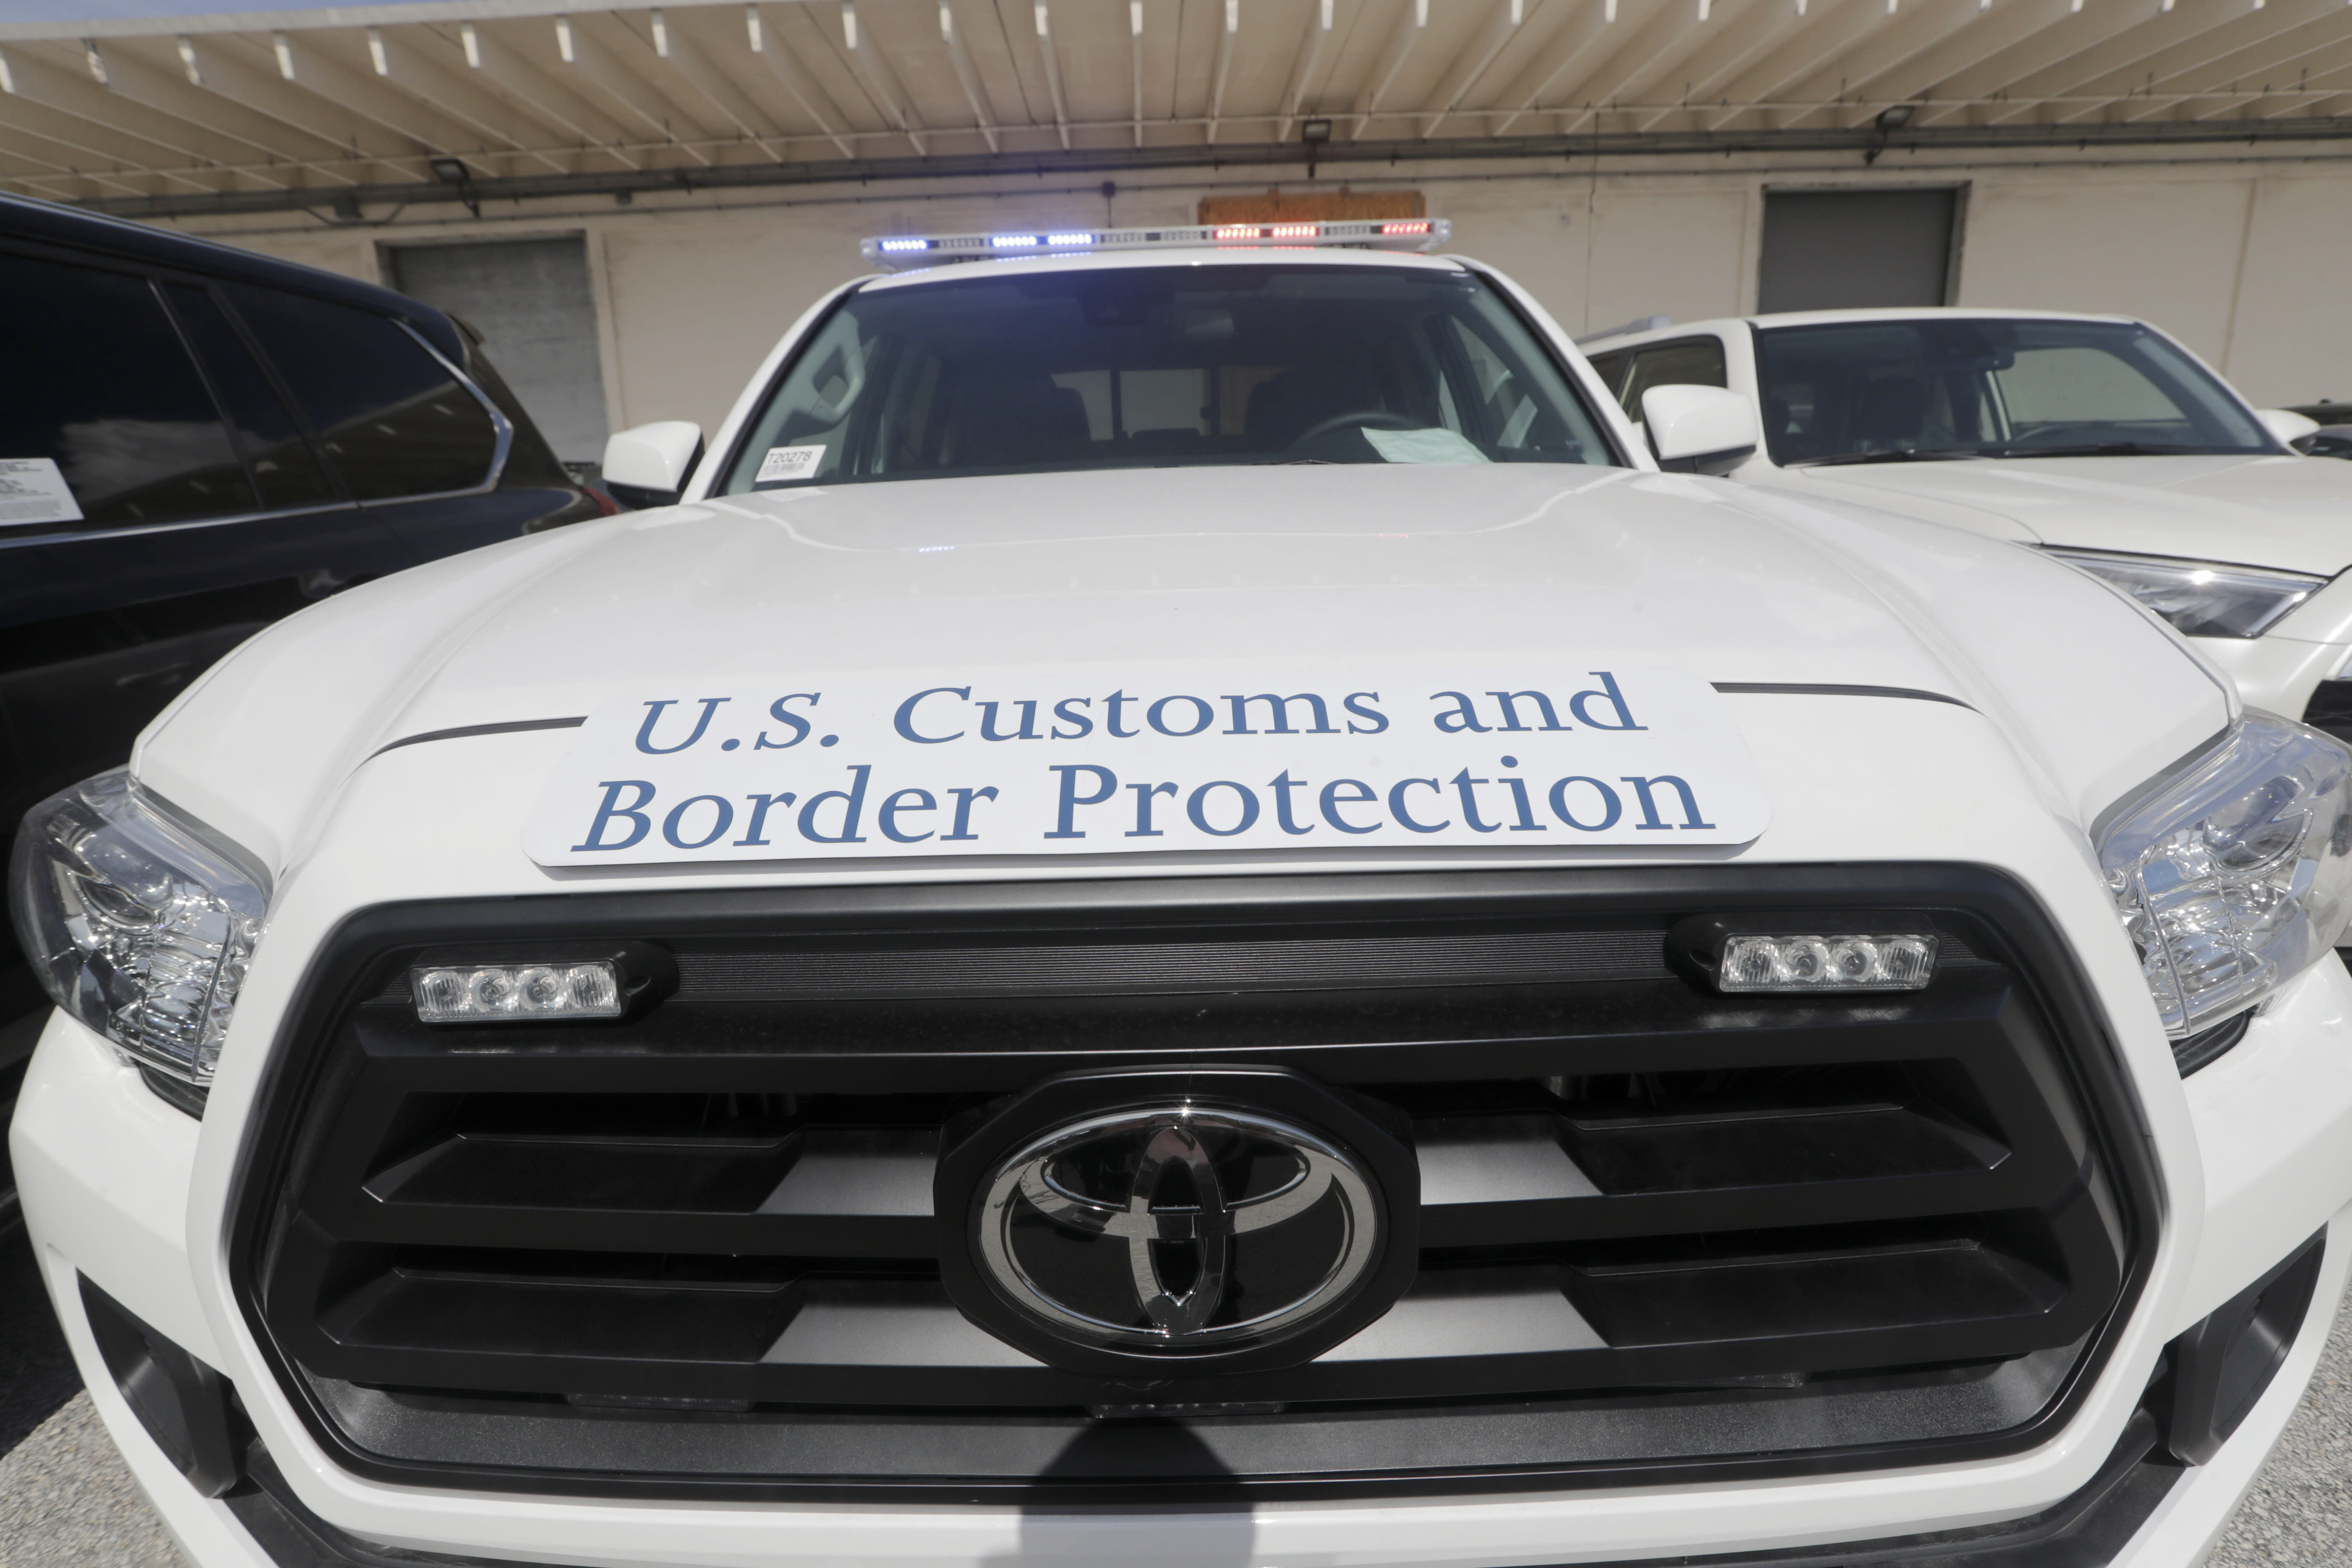 A Toyota Tacoma with flashing lights sits among vehicles worth an estimated $3.2 million, at Port Everglades after they were seized by Homeland Security Investigations, Wednesday, July 8, 2020, in Fort Lauderdale, Fla. The vehicles were to be smuggled to Venezuela in violation of U.S. export laws and sanctions against the socialist Venezuelan Government. (AP Photo/Lynne Sladky)